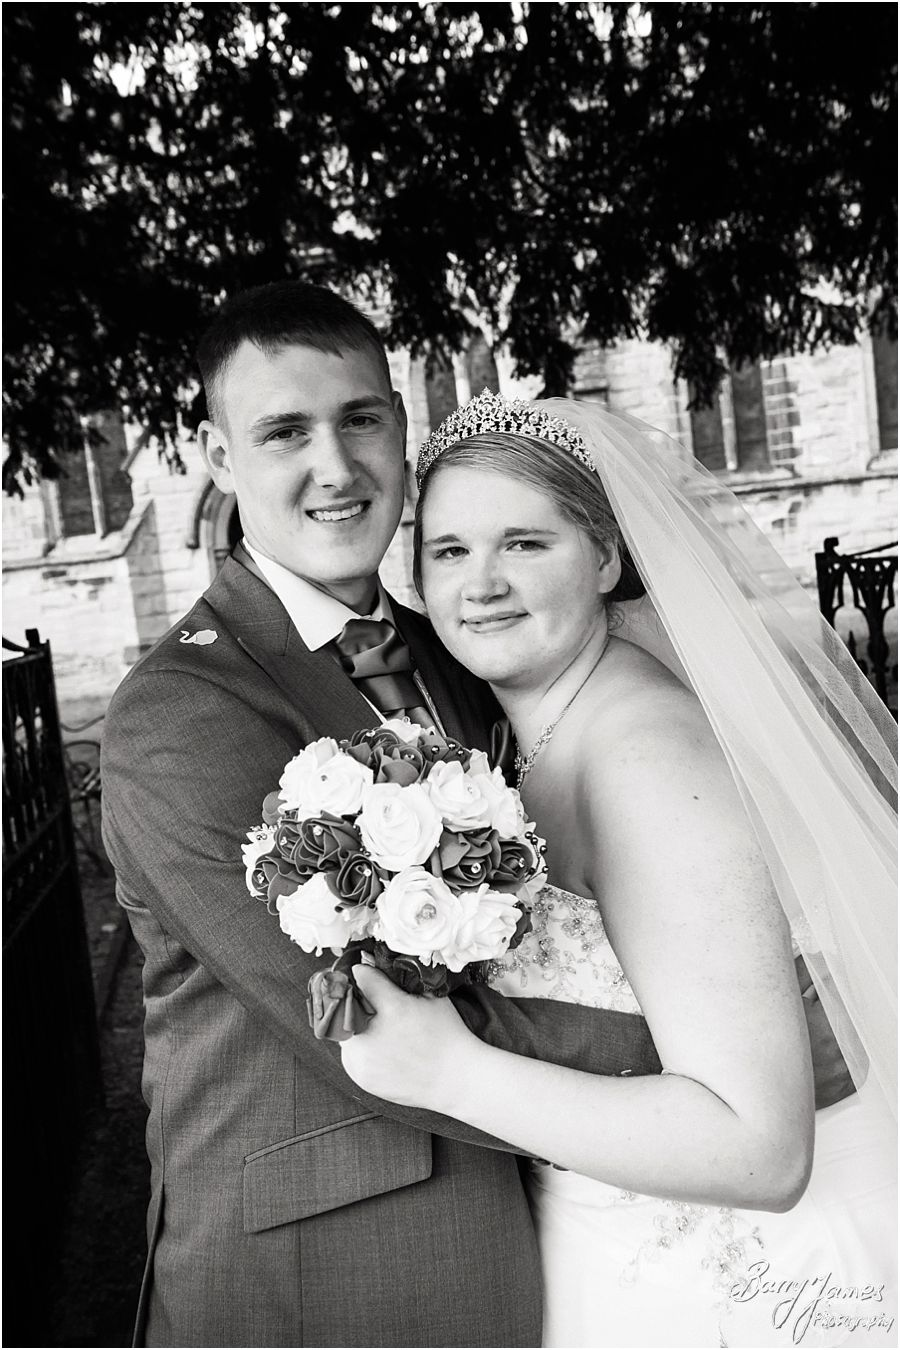 Candid and contemporary wedding photographs that tell the beautiful wedding story at St Chads Church in Lichfield by Lichfield Wedding Photographer Barry James